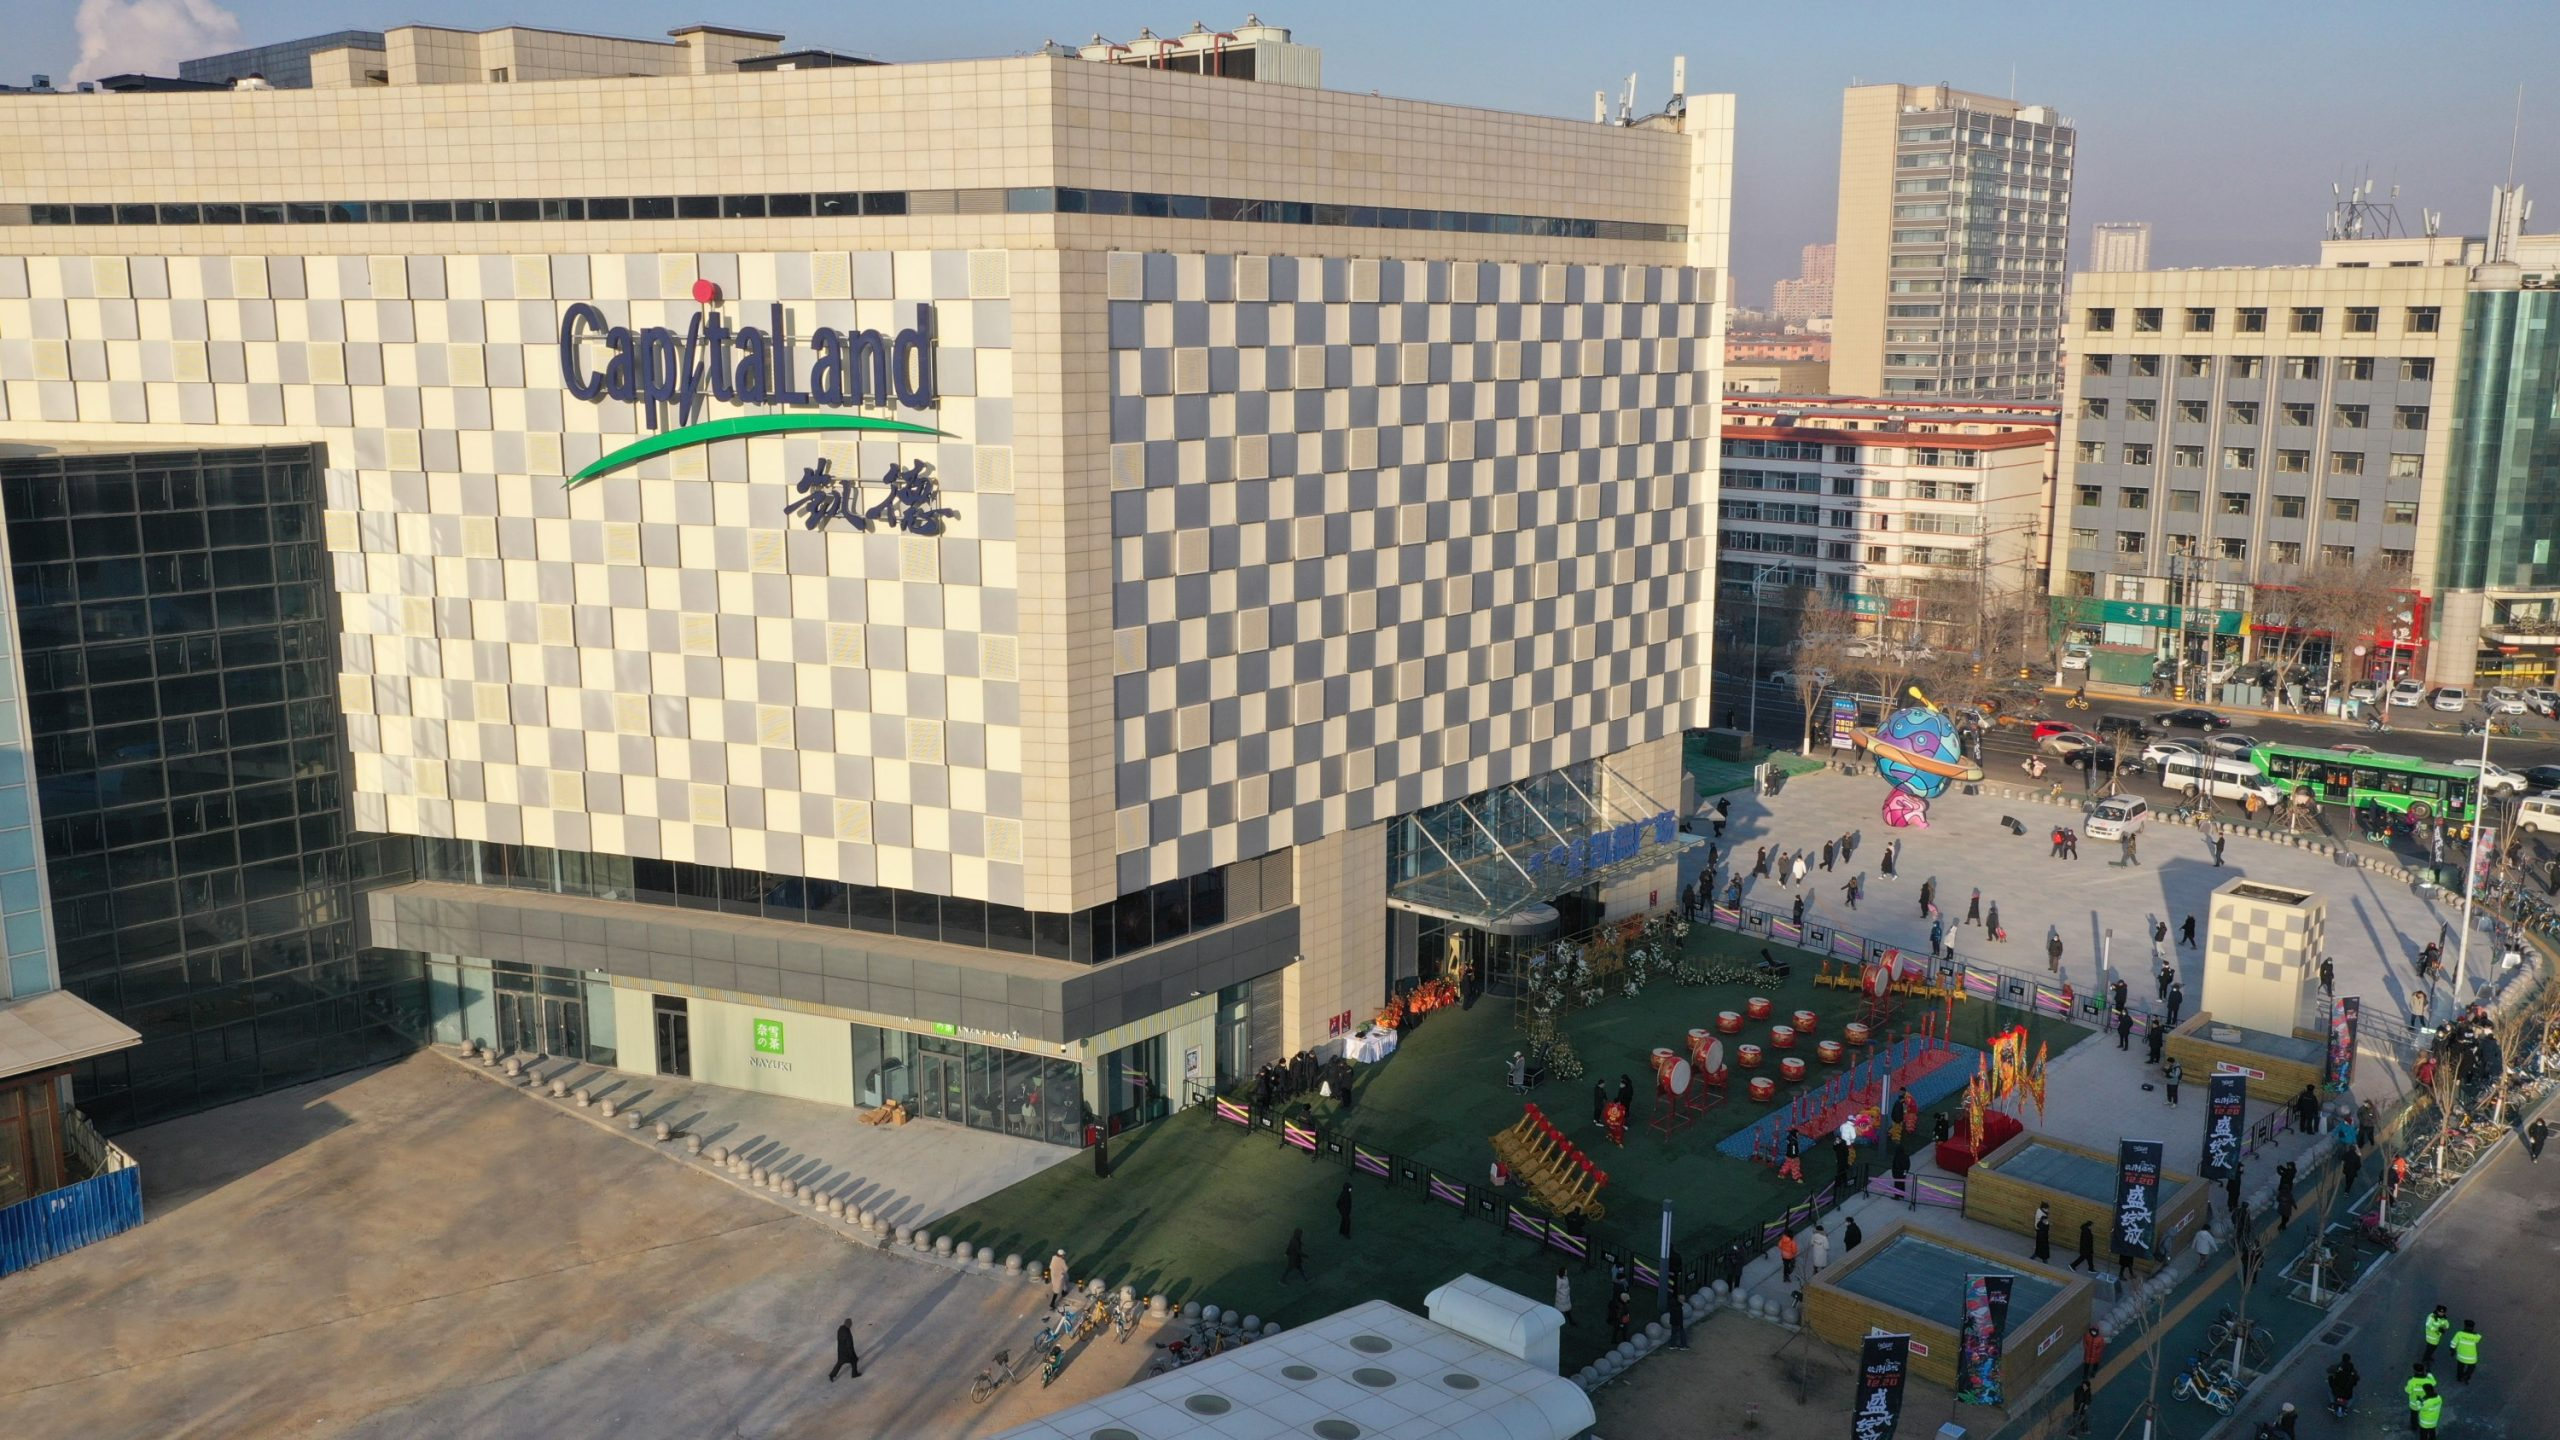 CapitaMall Nuohemule (Photo: CapitaLand)